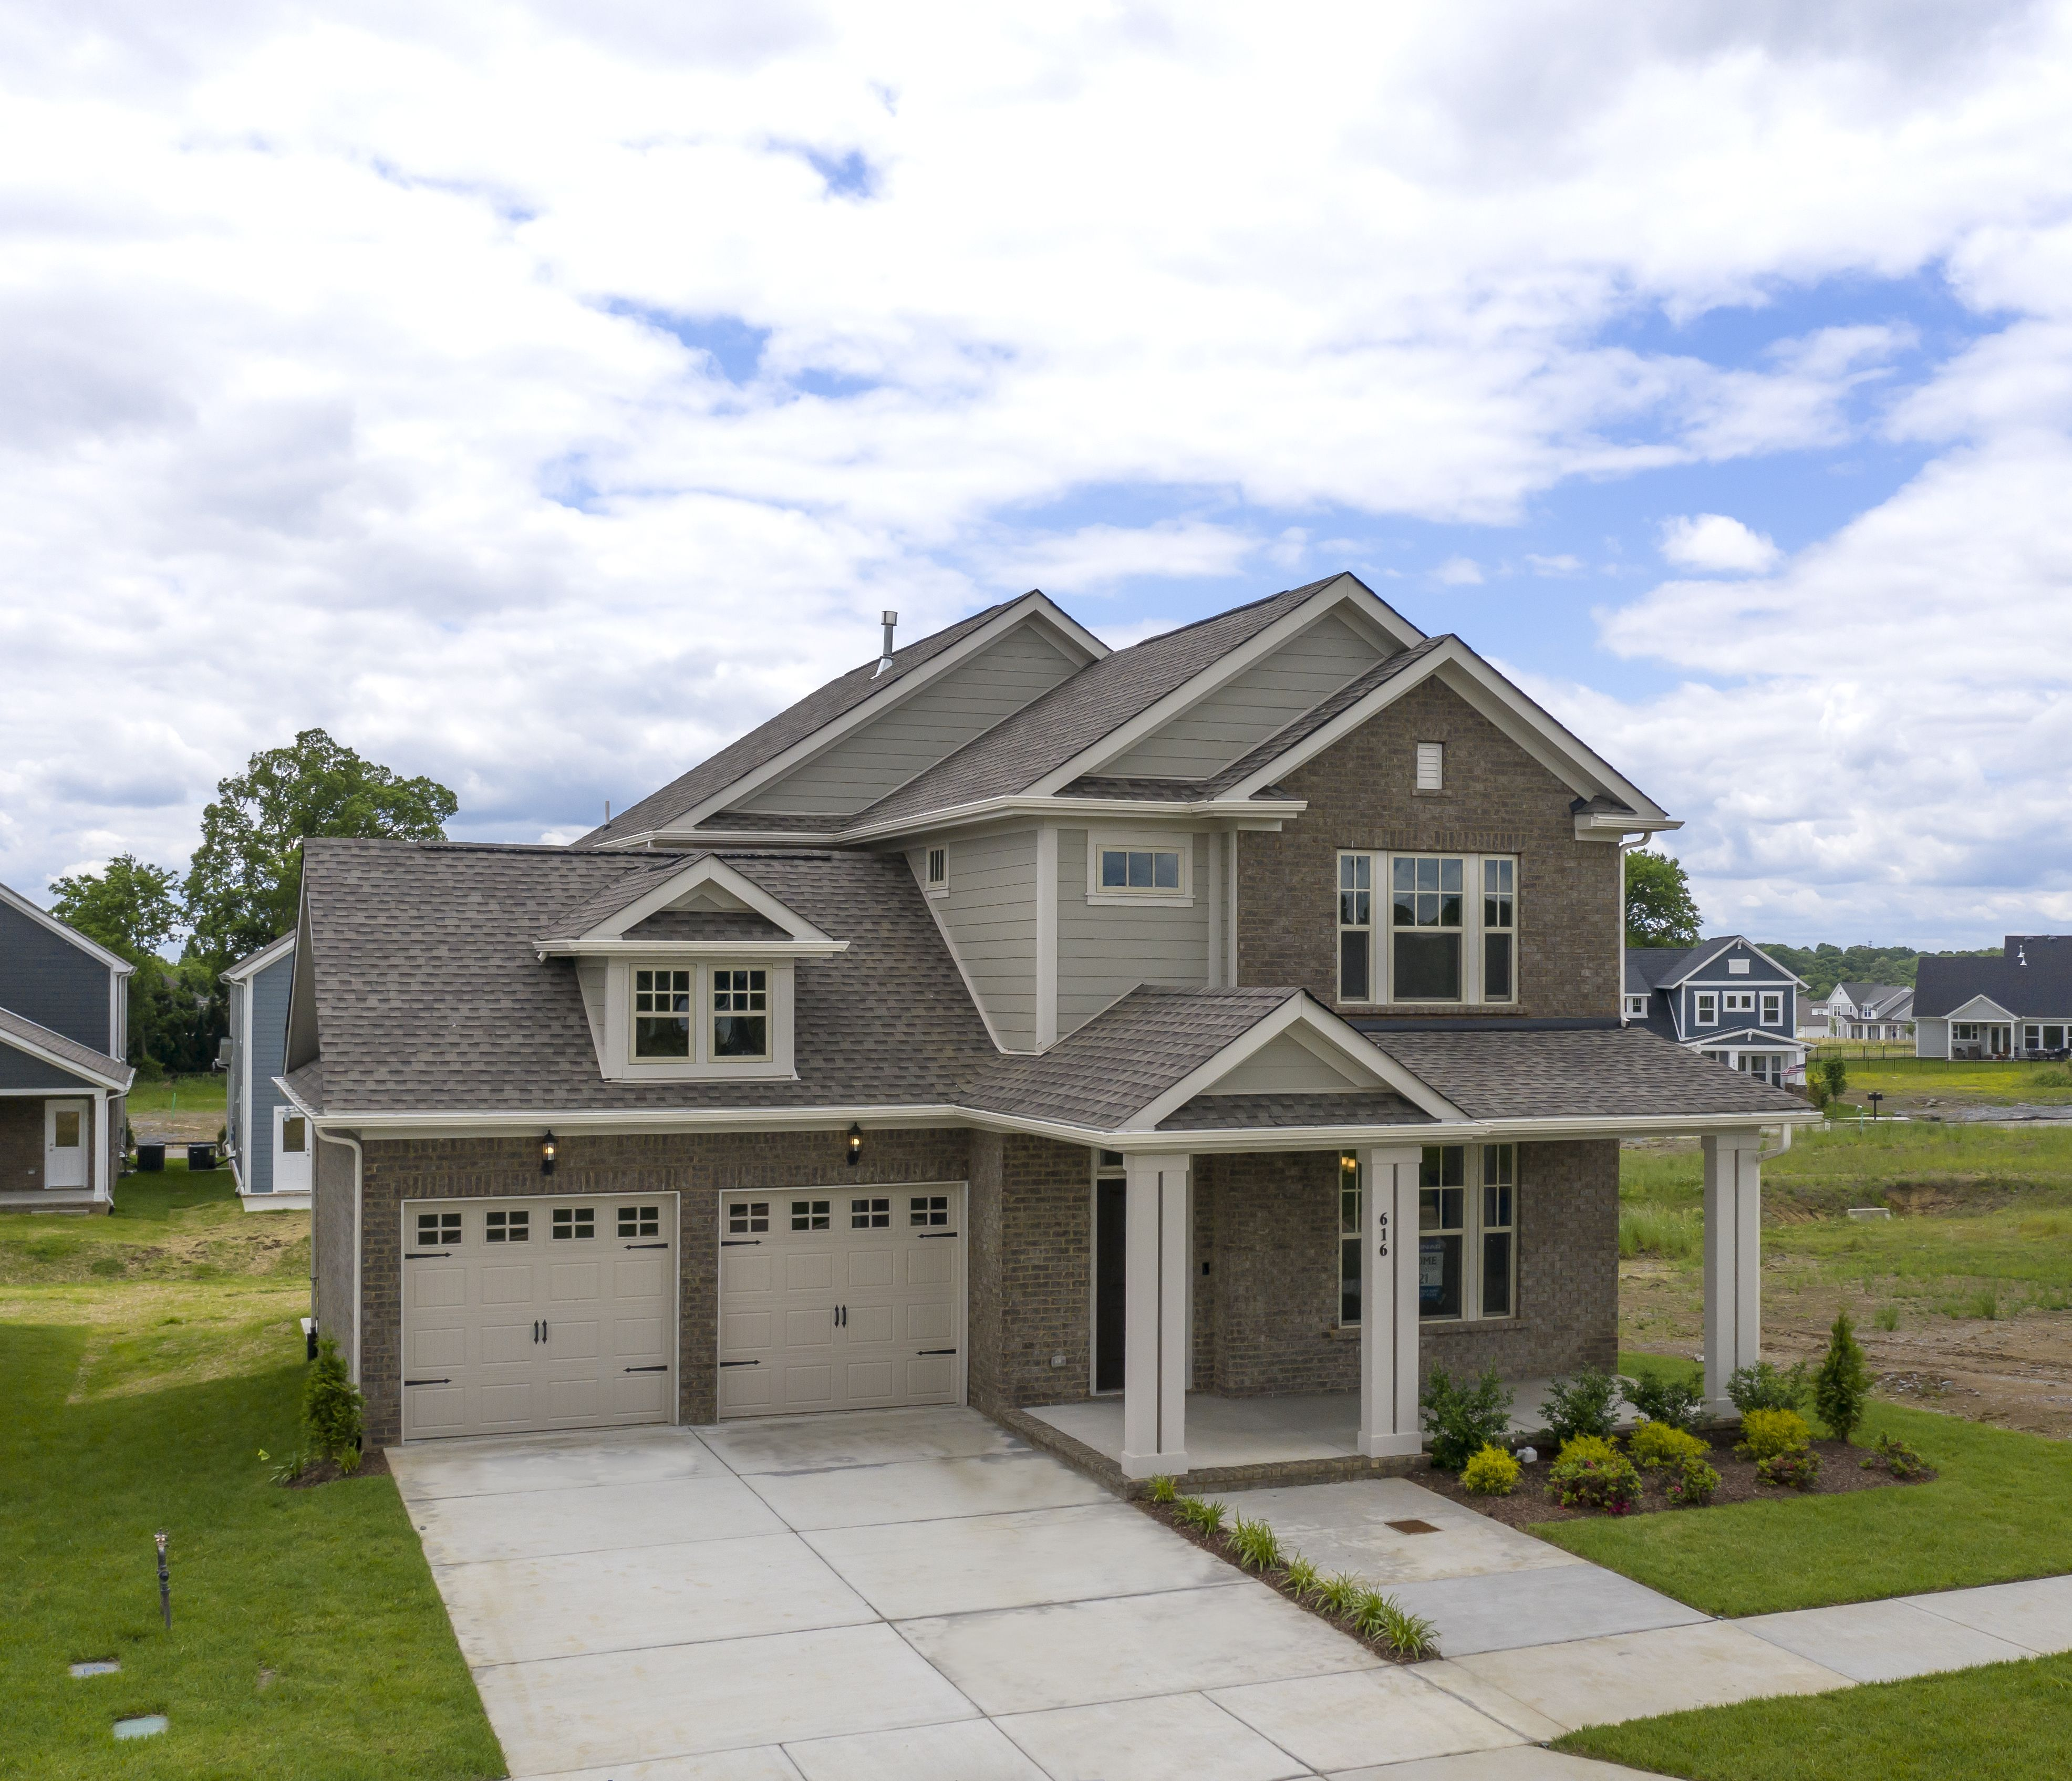 Benefits of a lennar nashville quick movein home the